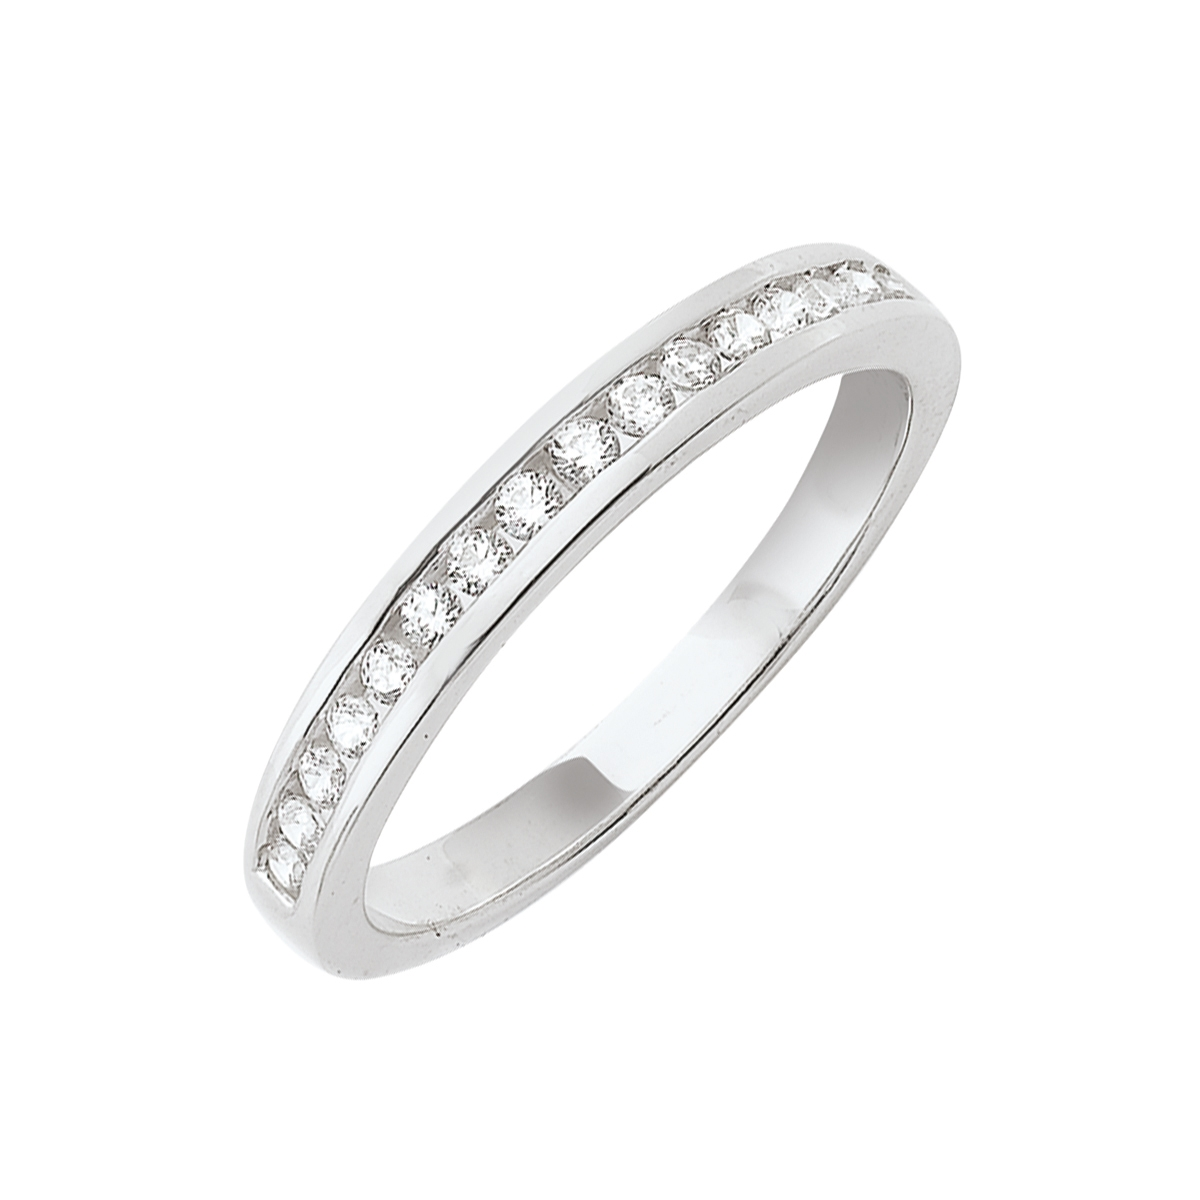 Alliance demi-tour serti rail or blanc - Diamants synthétiques 0,25 carat